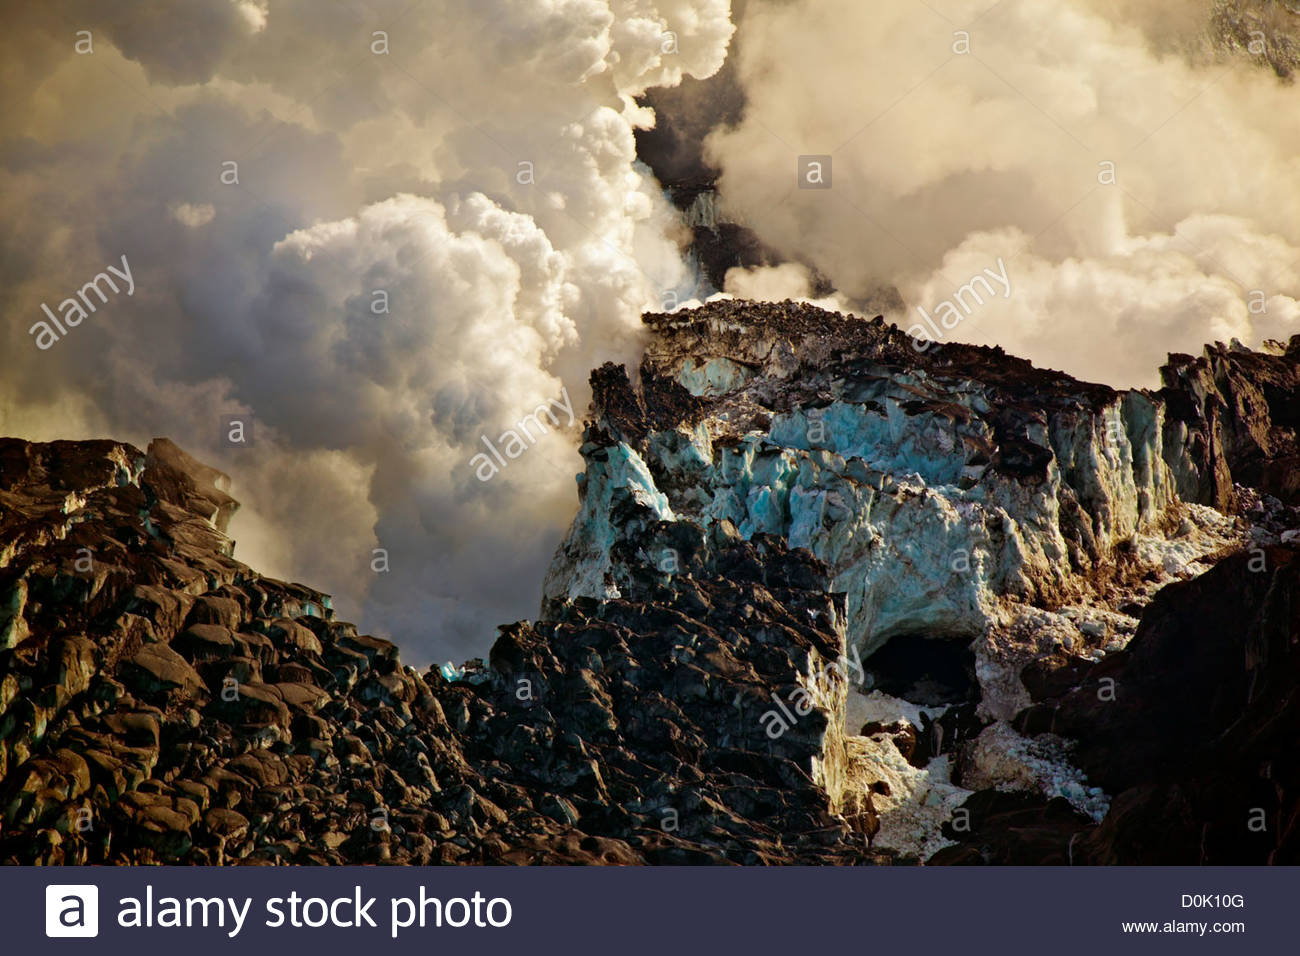 Steaming craters explosion during Eyjafjallajokull volcanic eruption on Mt. Eyjafjoll in Iceland. Lava broke through - Stock Image